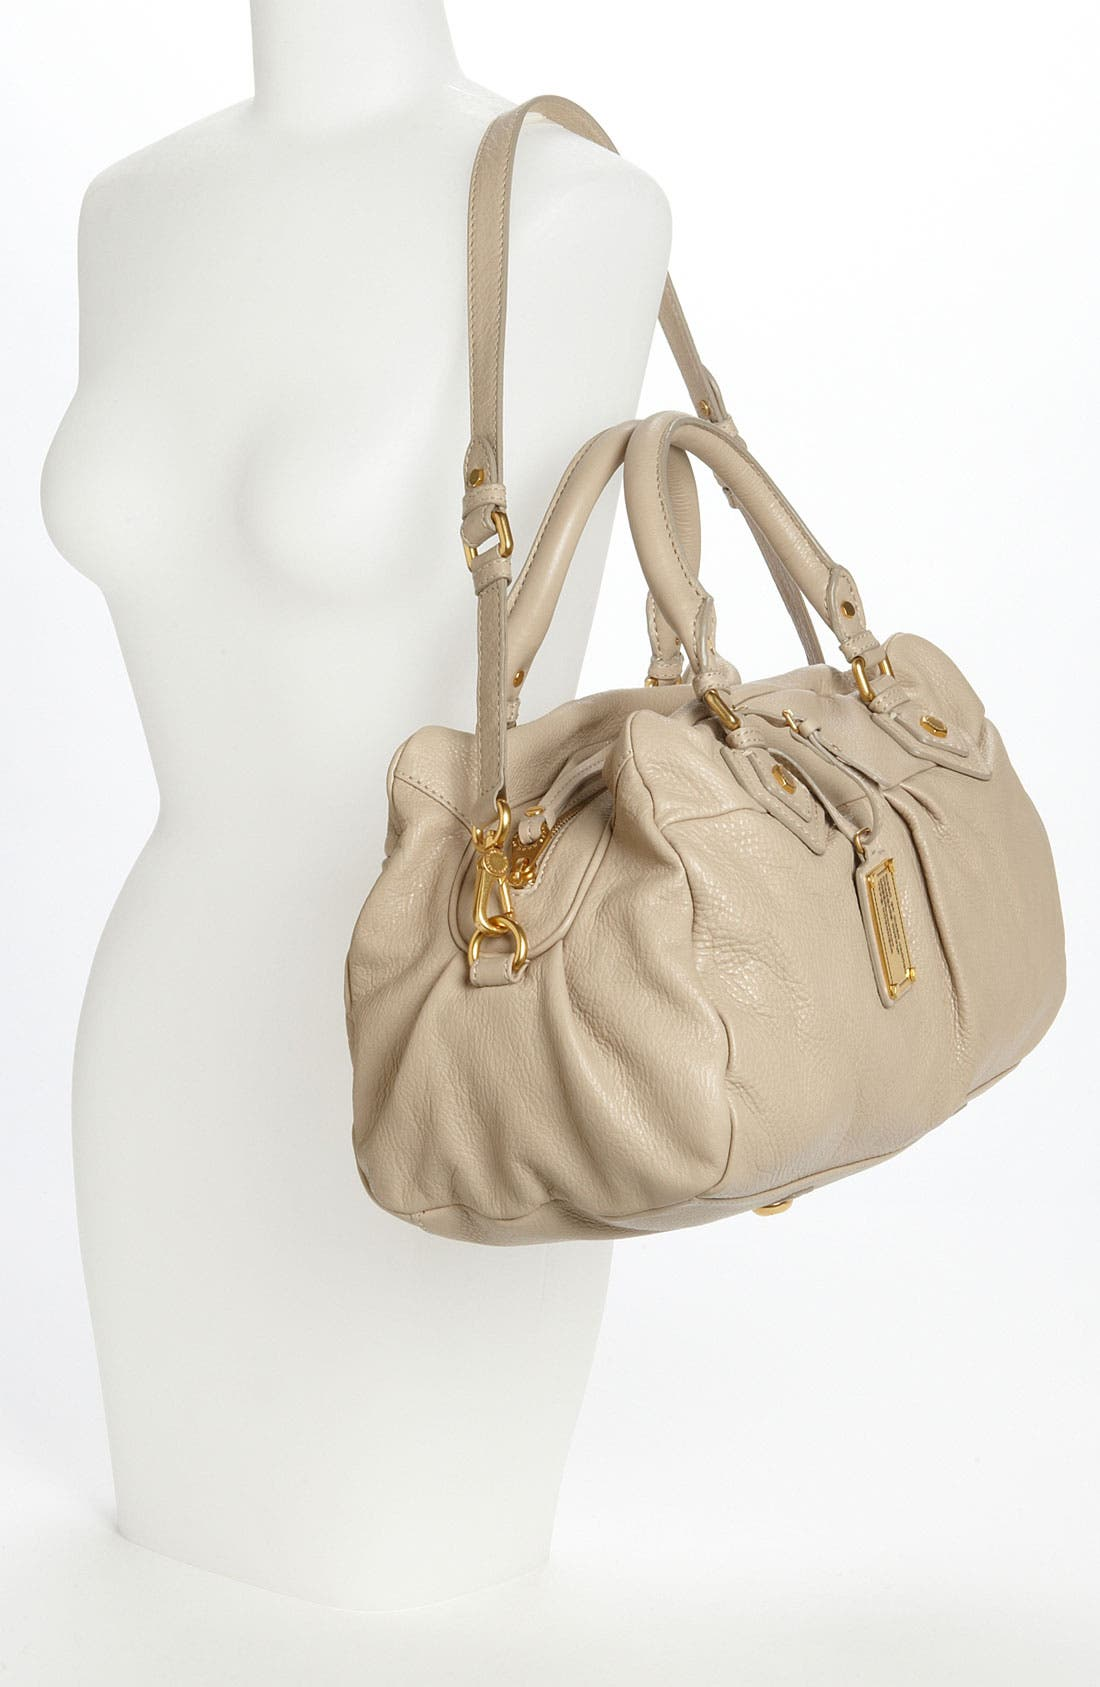 MARC BY MARC JACOBS 'Classic Q - Groovee' Satchel,                             Alternate thumbnail 2, color,                             Creme